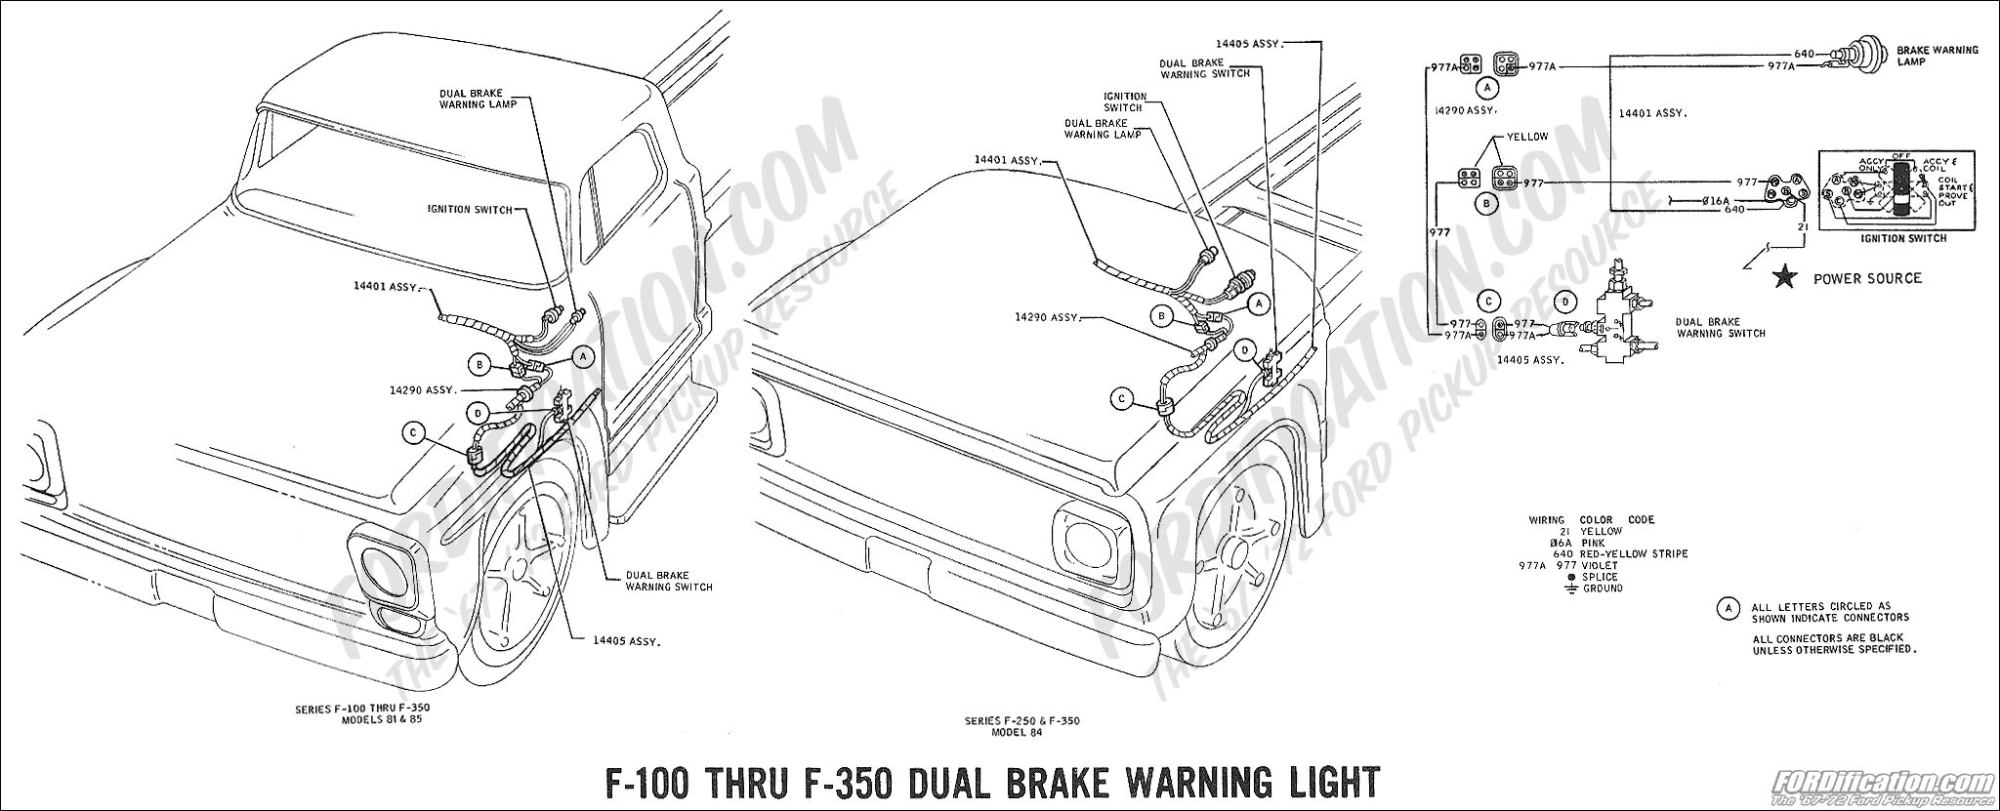 hight resolution of tail light wiring diagram ford f600